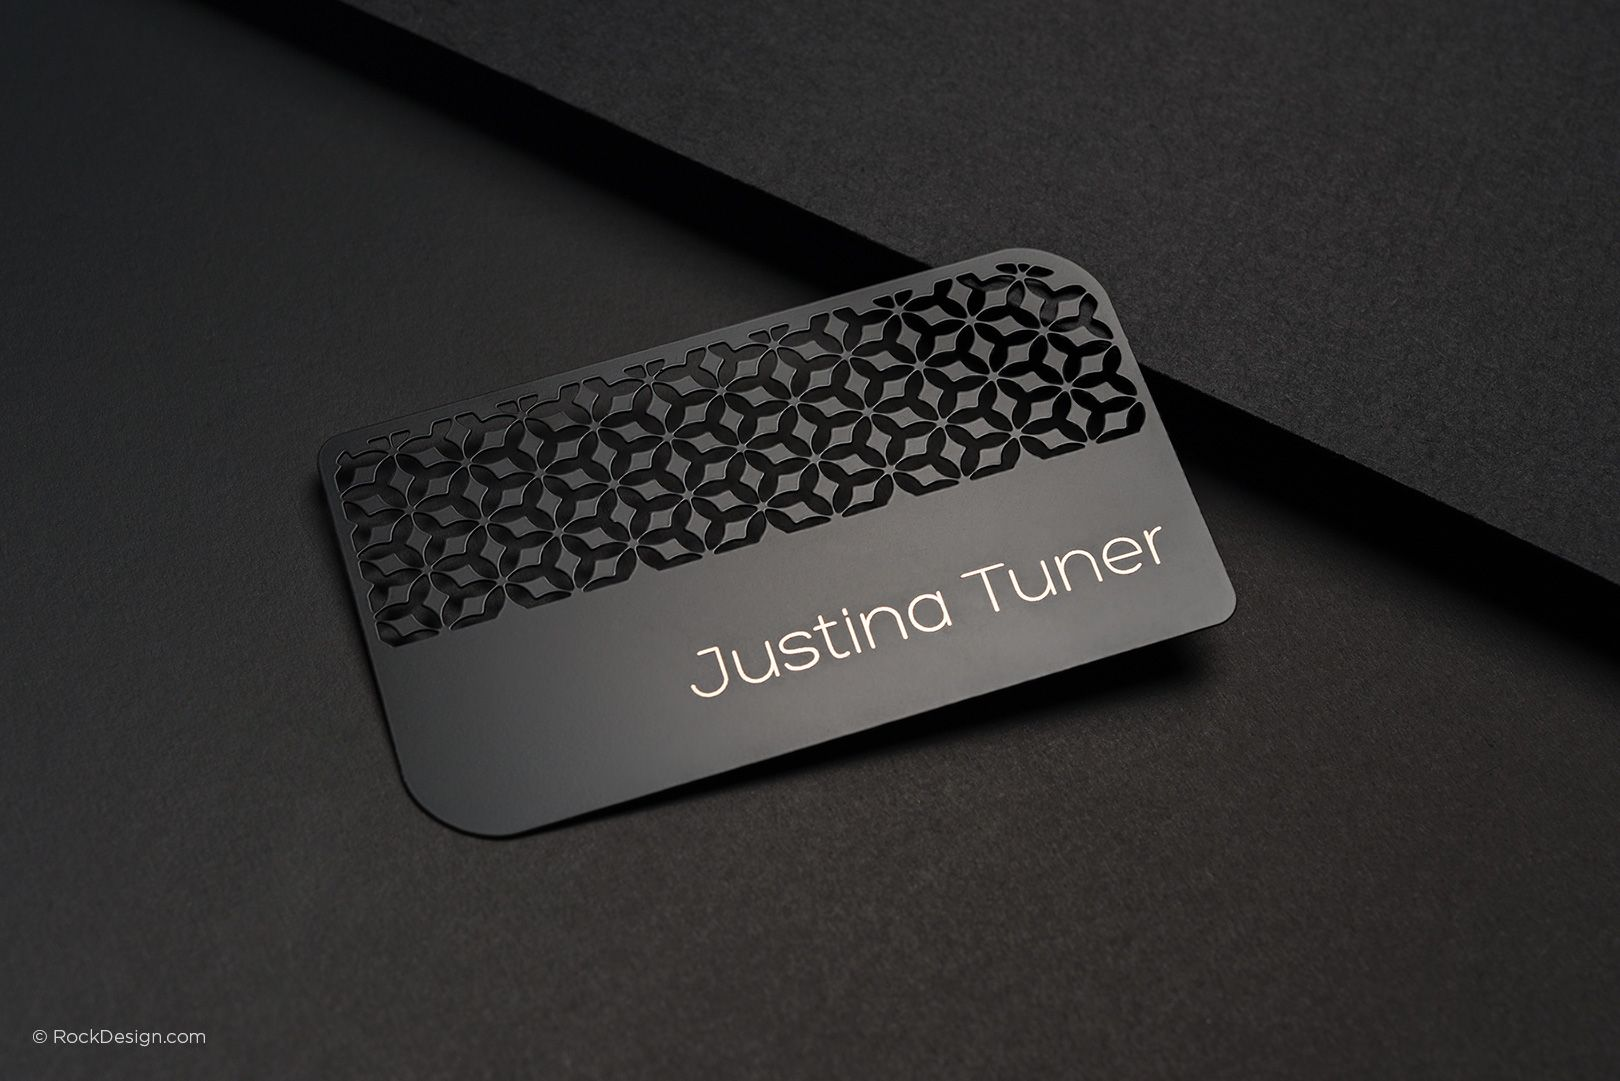 Quick Turnaround Time - Laser Engraved Black Metal Business Cards ...